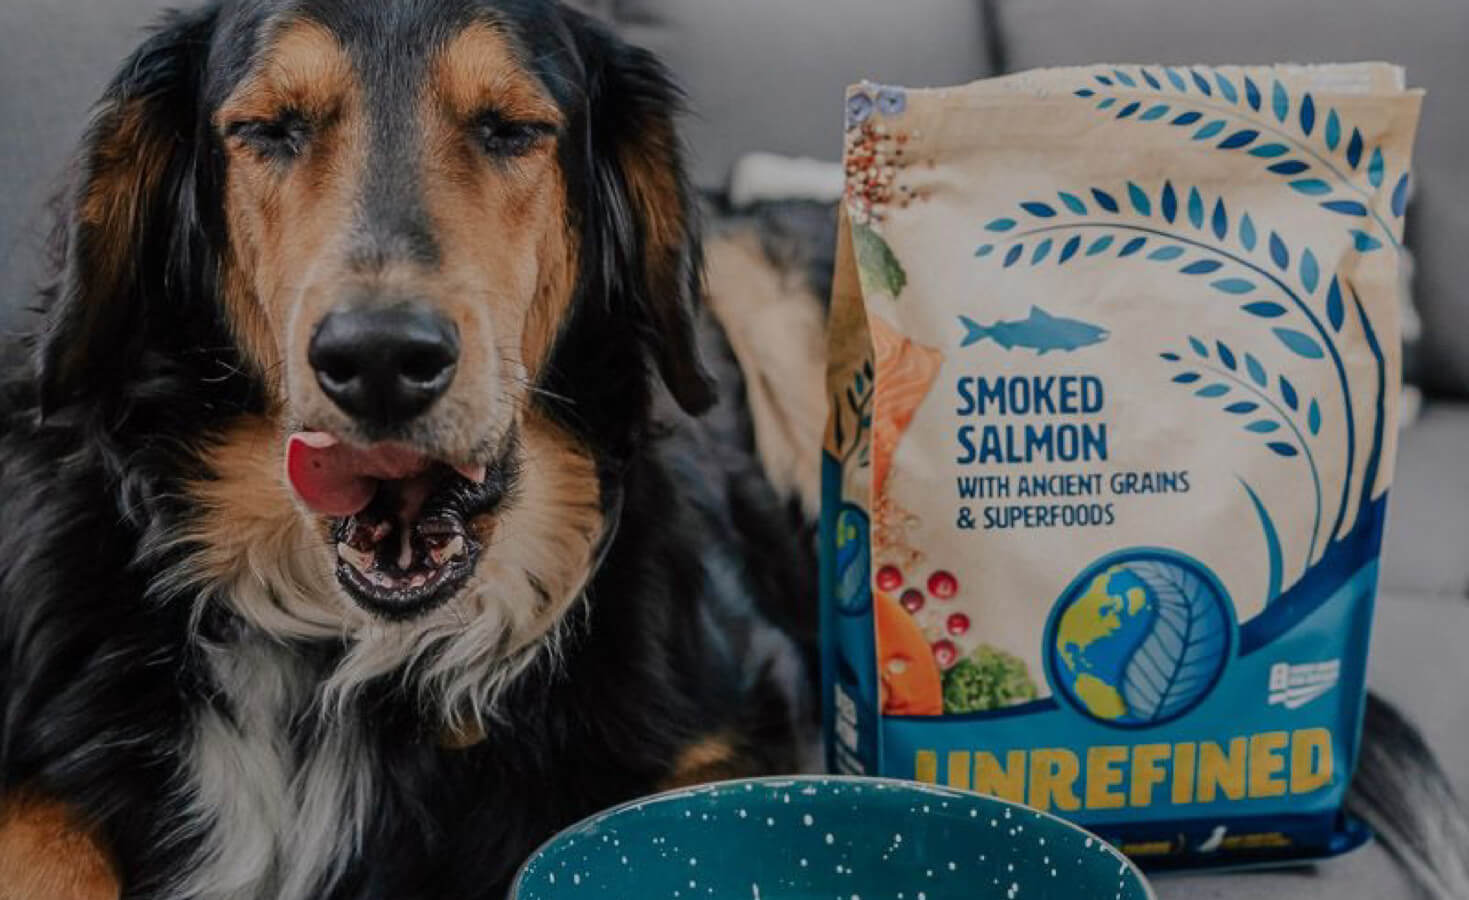 A dog licks his lips while laying next to a bag of UNREFINED dog food and a full bowl of food